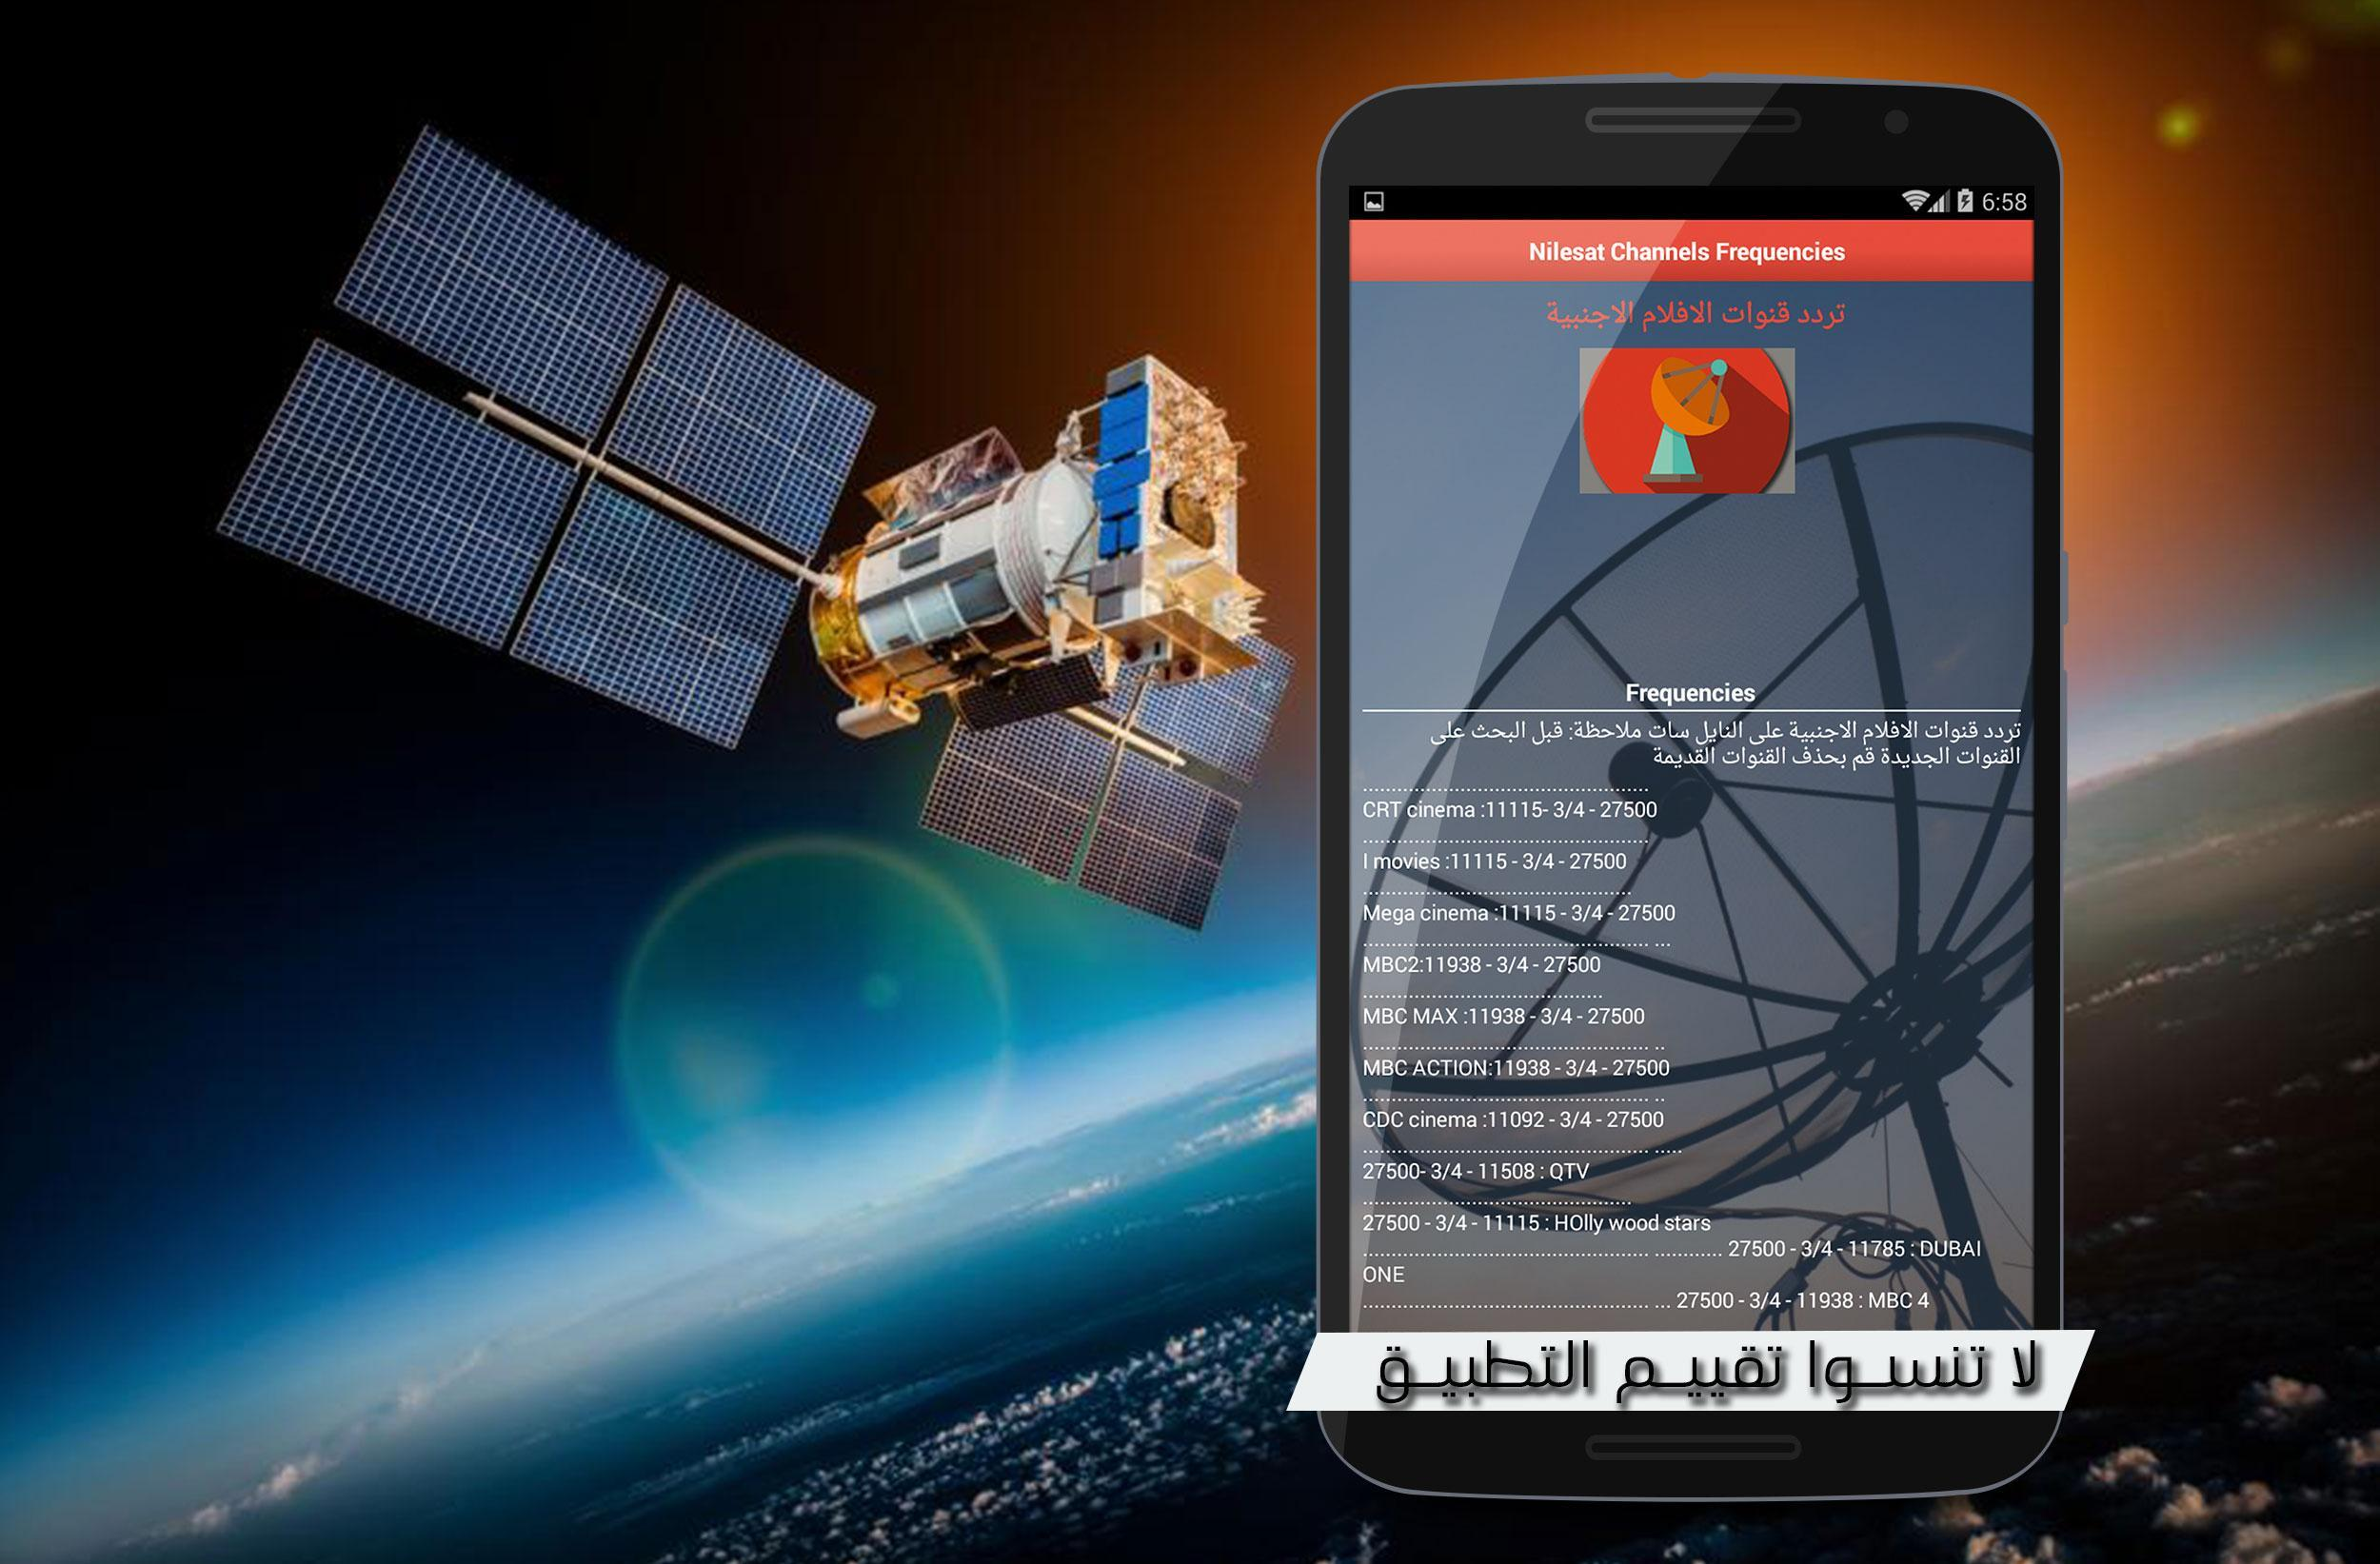 Nilesat Channels Frequencies📡 for Android - APK Download